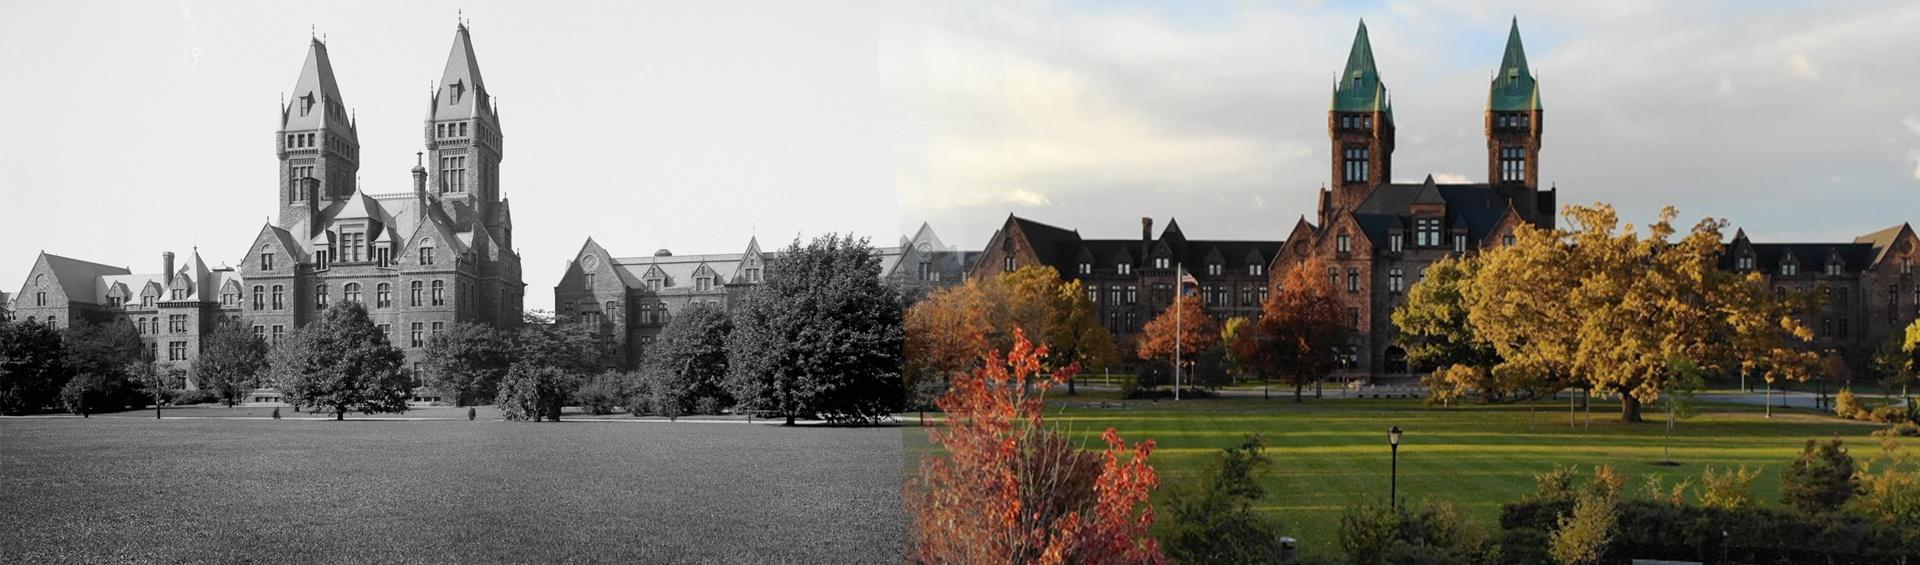 View of the Richardson Olmsted campus from the South Lawn B & W and present day